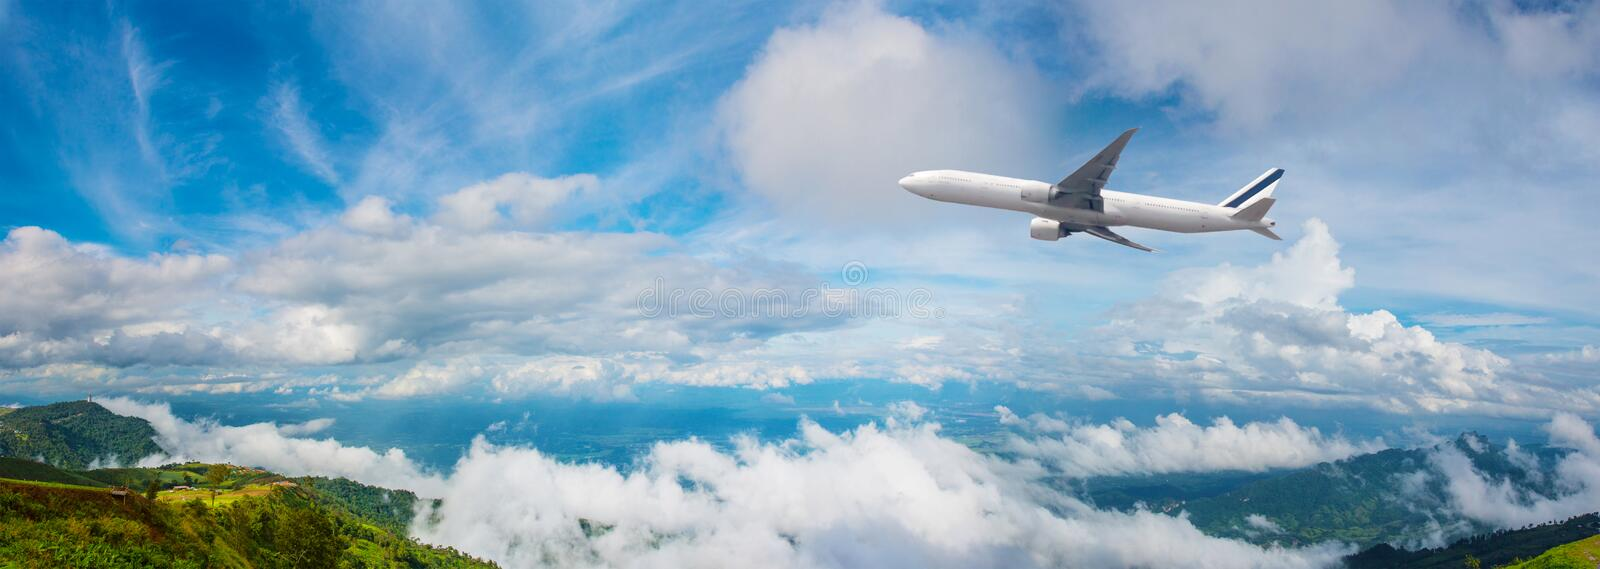 DSLR camera taking travel nature photography. full frame camera on tripod take photograph of airplane take off with beautiful lan. Dscape in background. DSLR stock photos